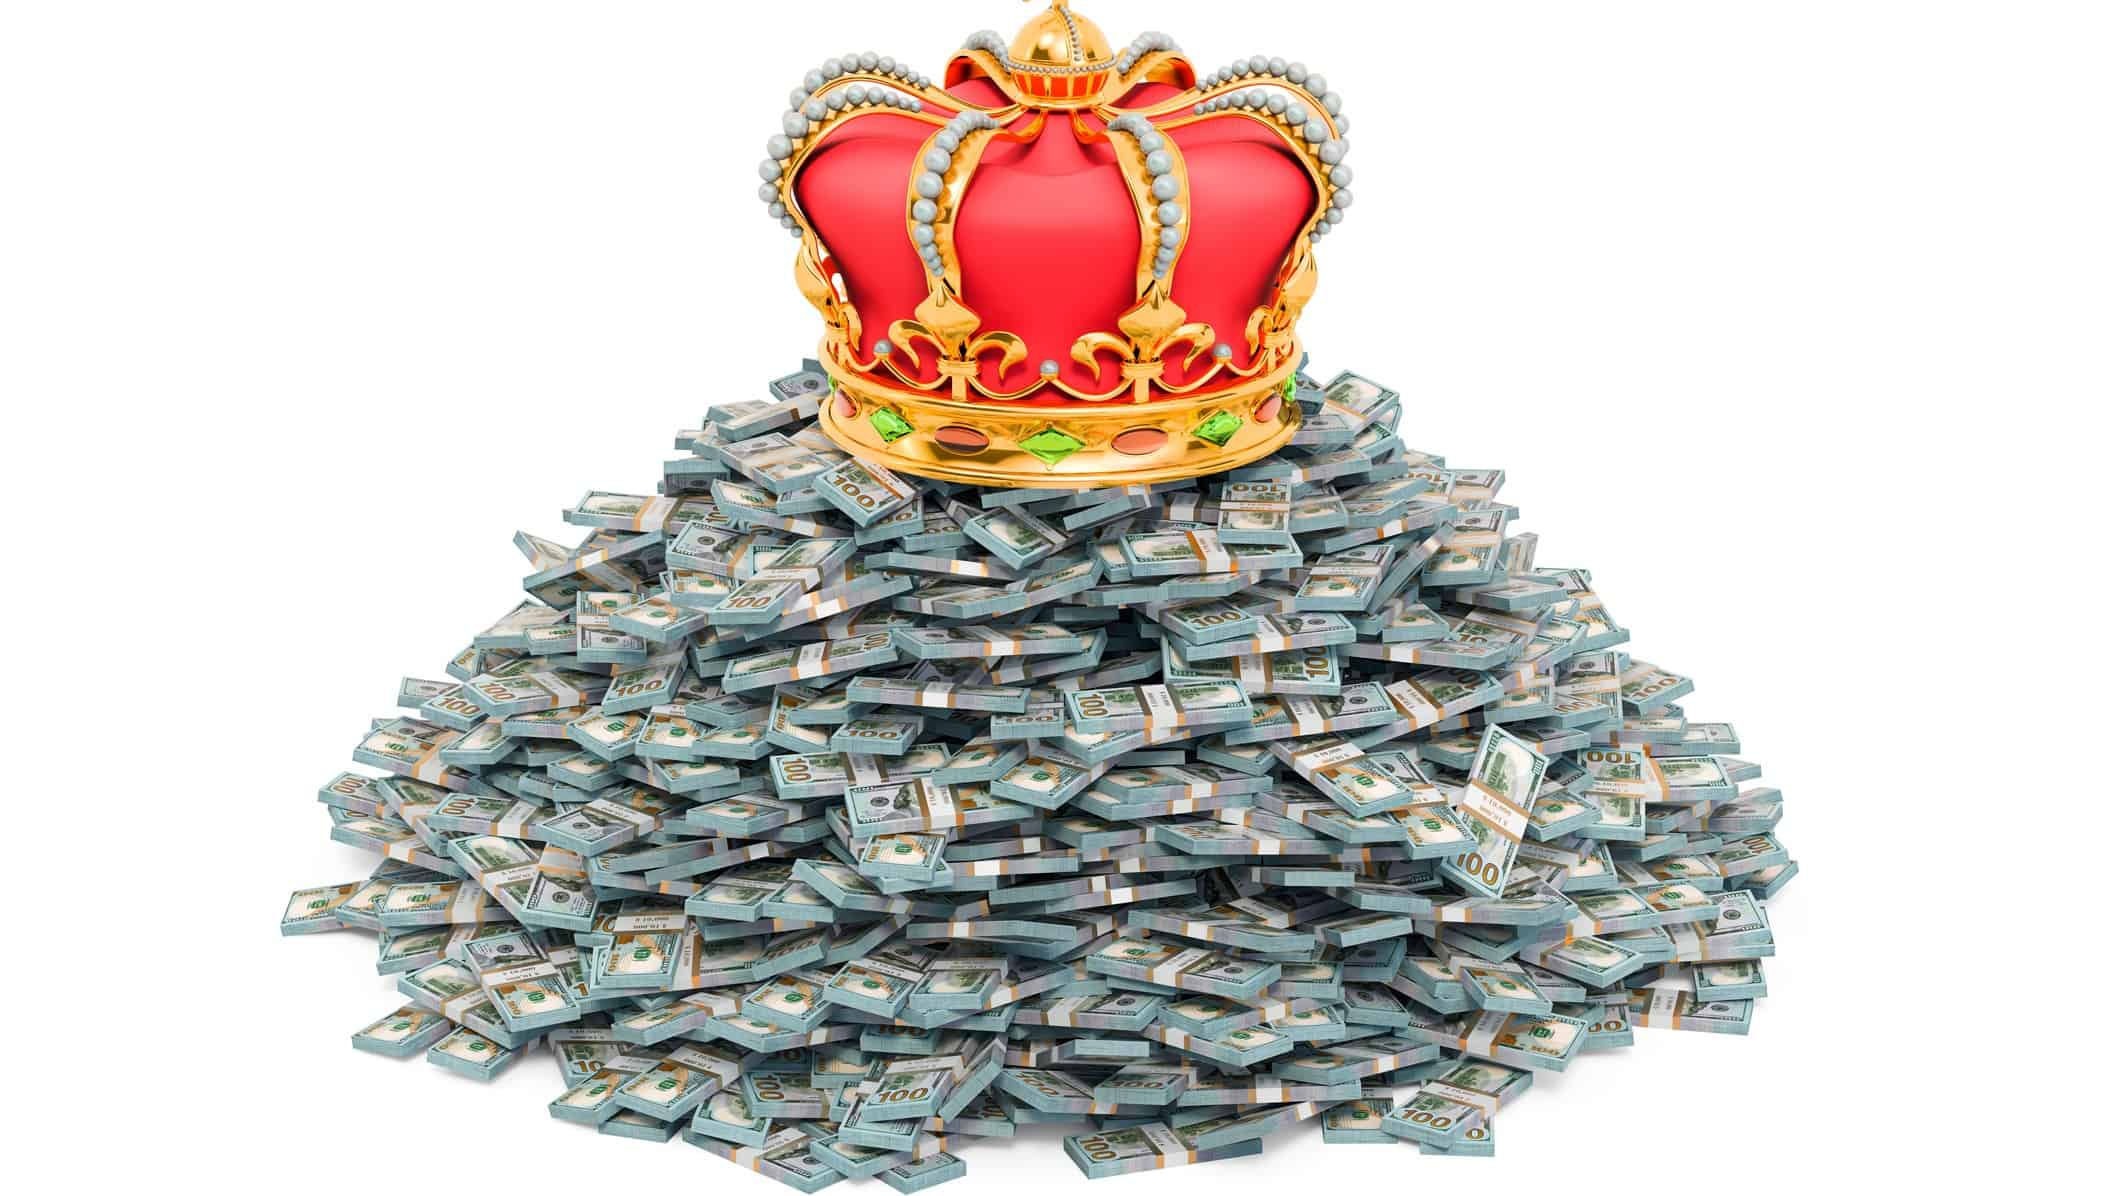 A crown sits on a pile of money, indicating the richest people